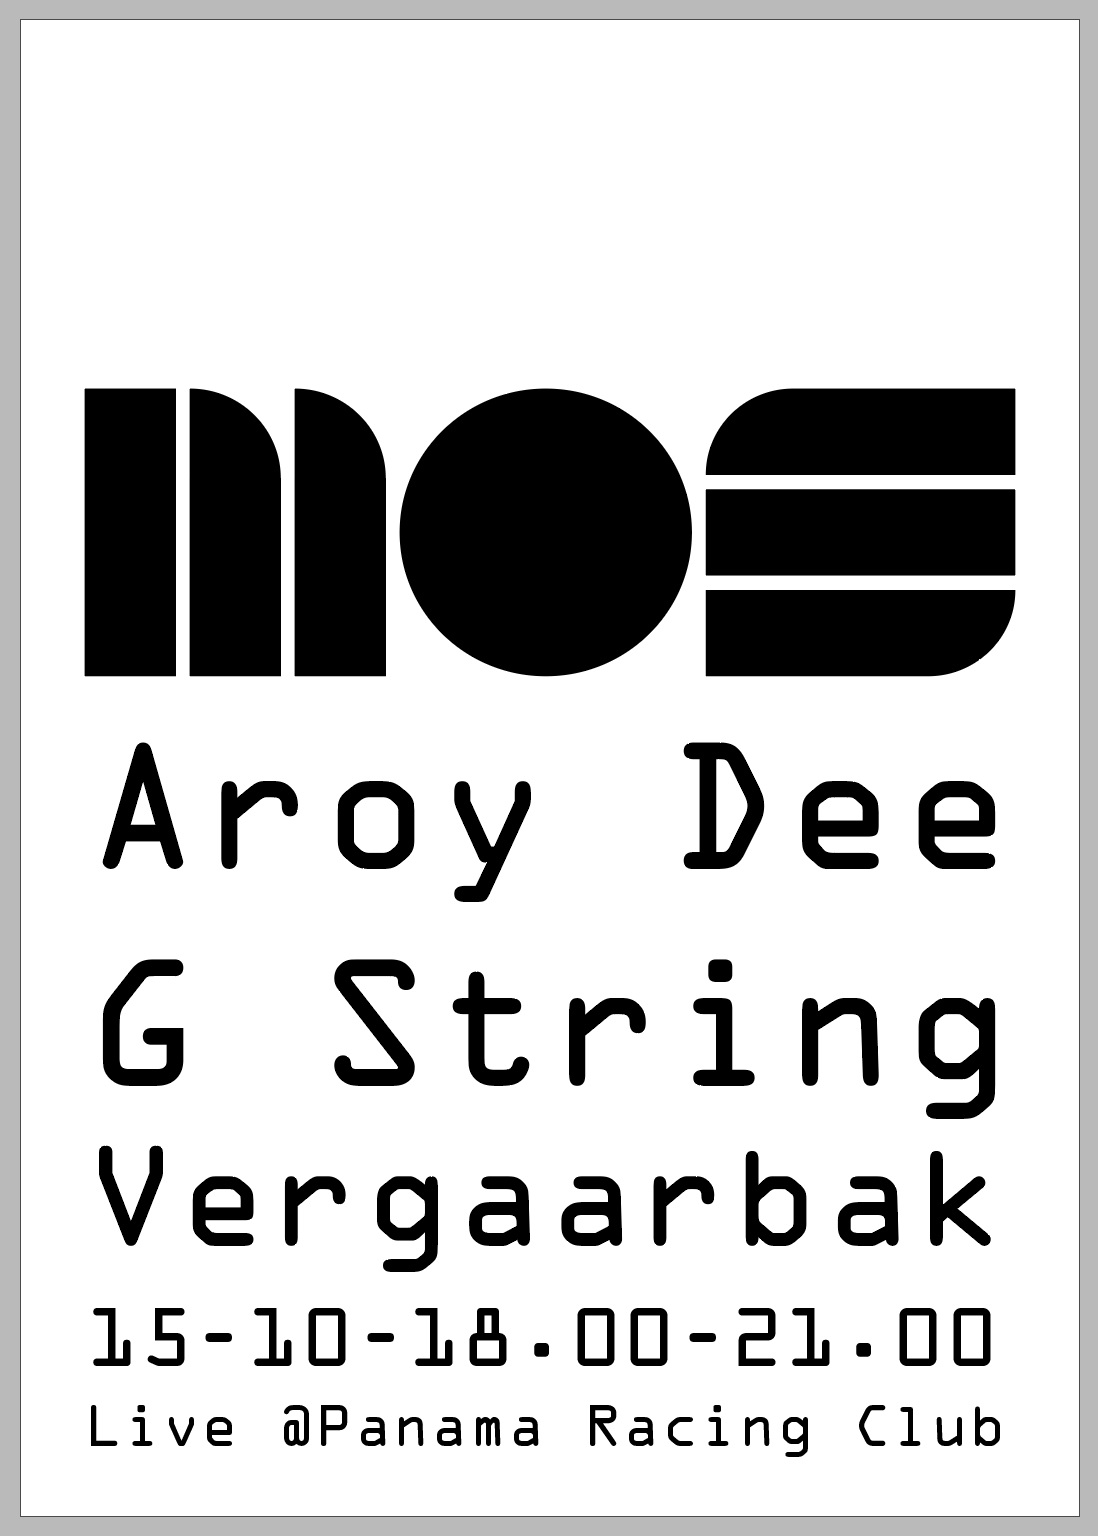 G String/Aroy Dee/Vergaarbak at the Panama Racing Club18.00 / 21.00 CET Next Thursday.